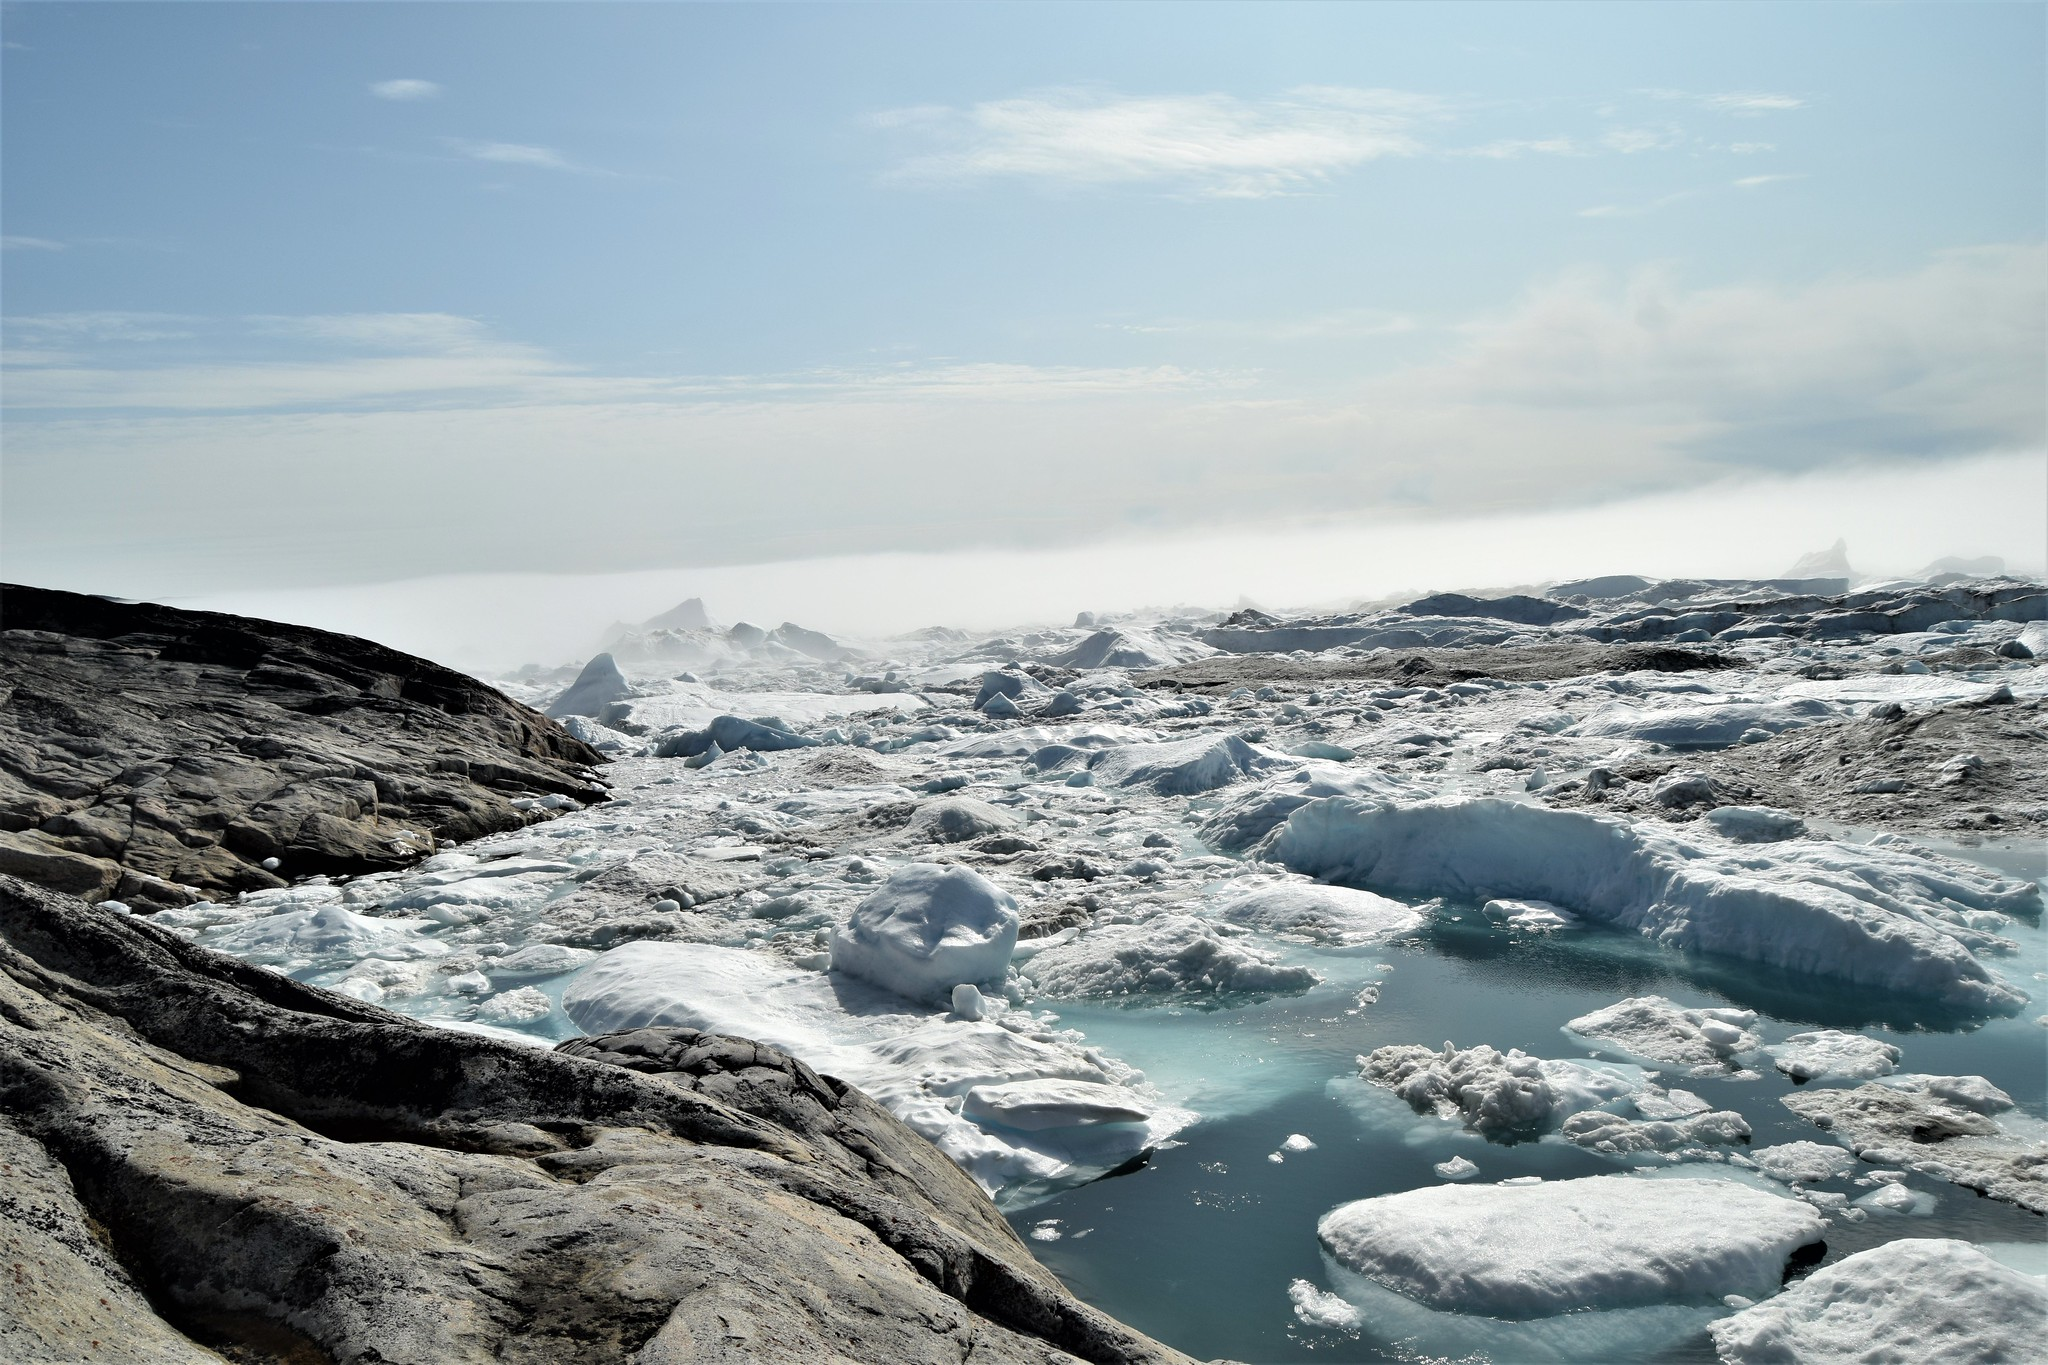 Free download high resolution image - free image free photo free stock image public domain picture -Greenland. Ilulissat. Ice field